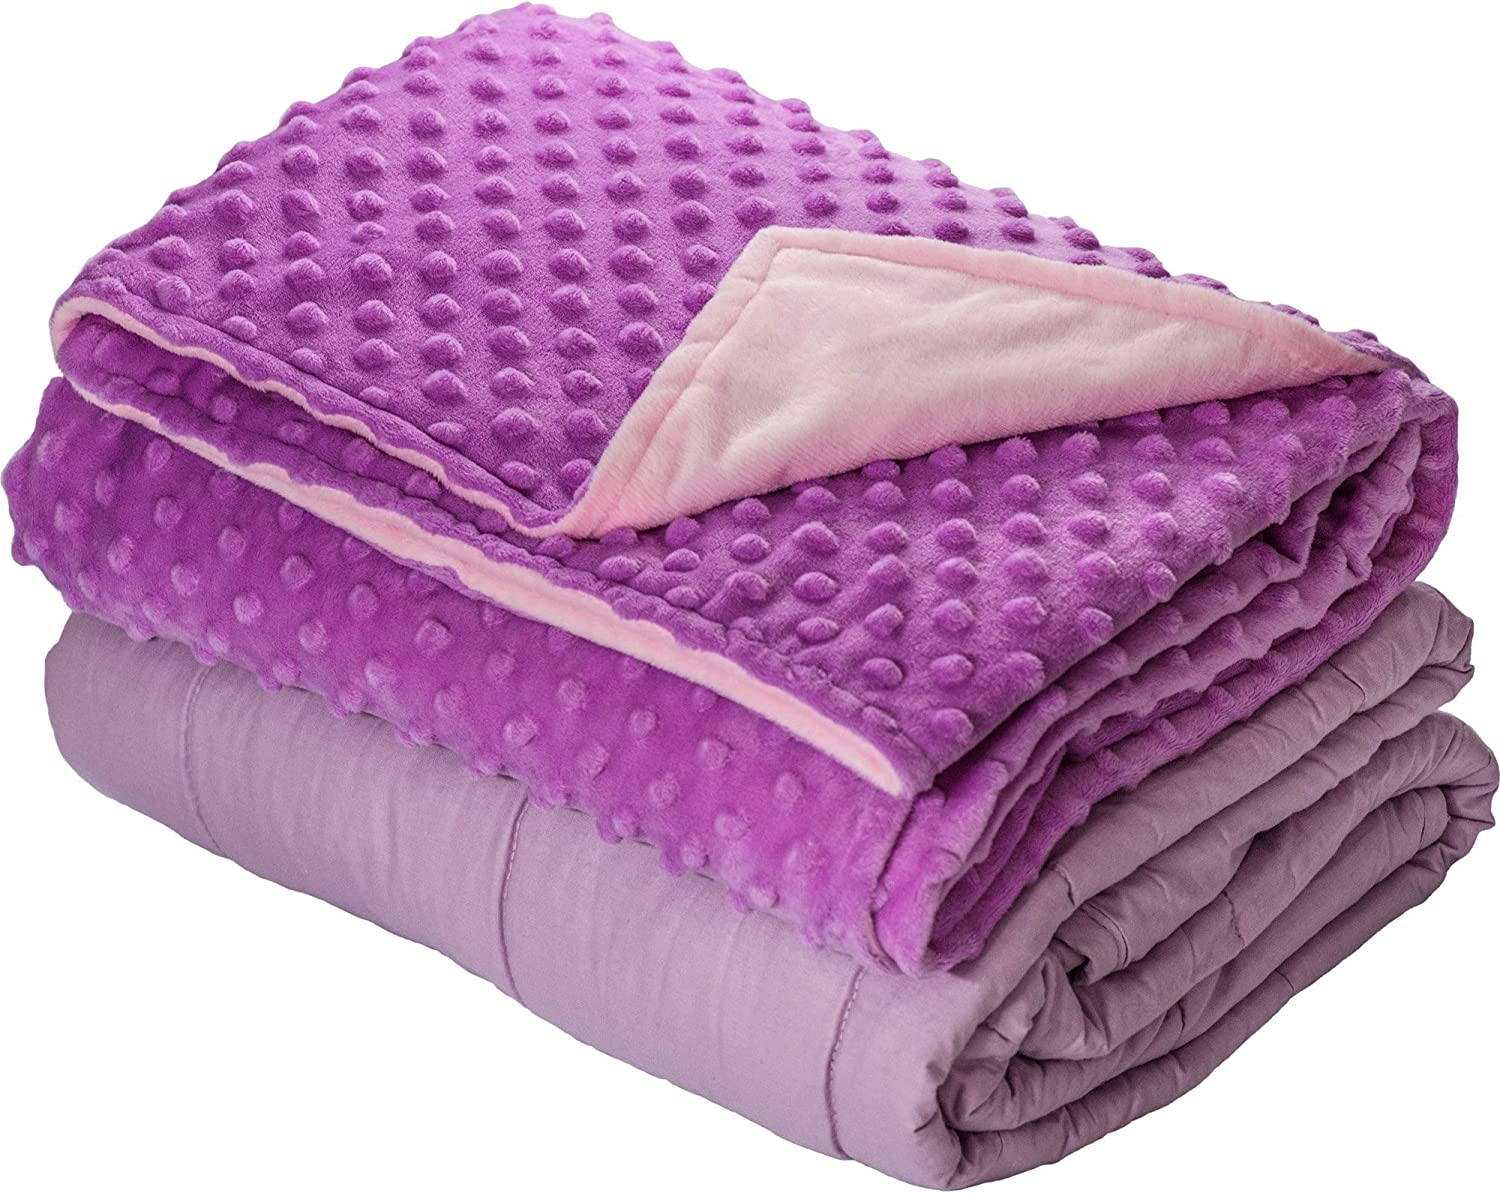 10lb Weighted Blanket with Dot Minky Cover for Kids Teens (Inner Light purple Cover purple & Pink, 48 x68  10lbs)